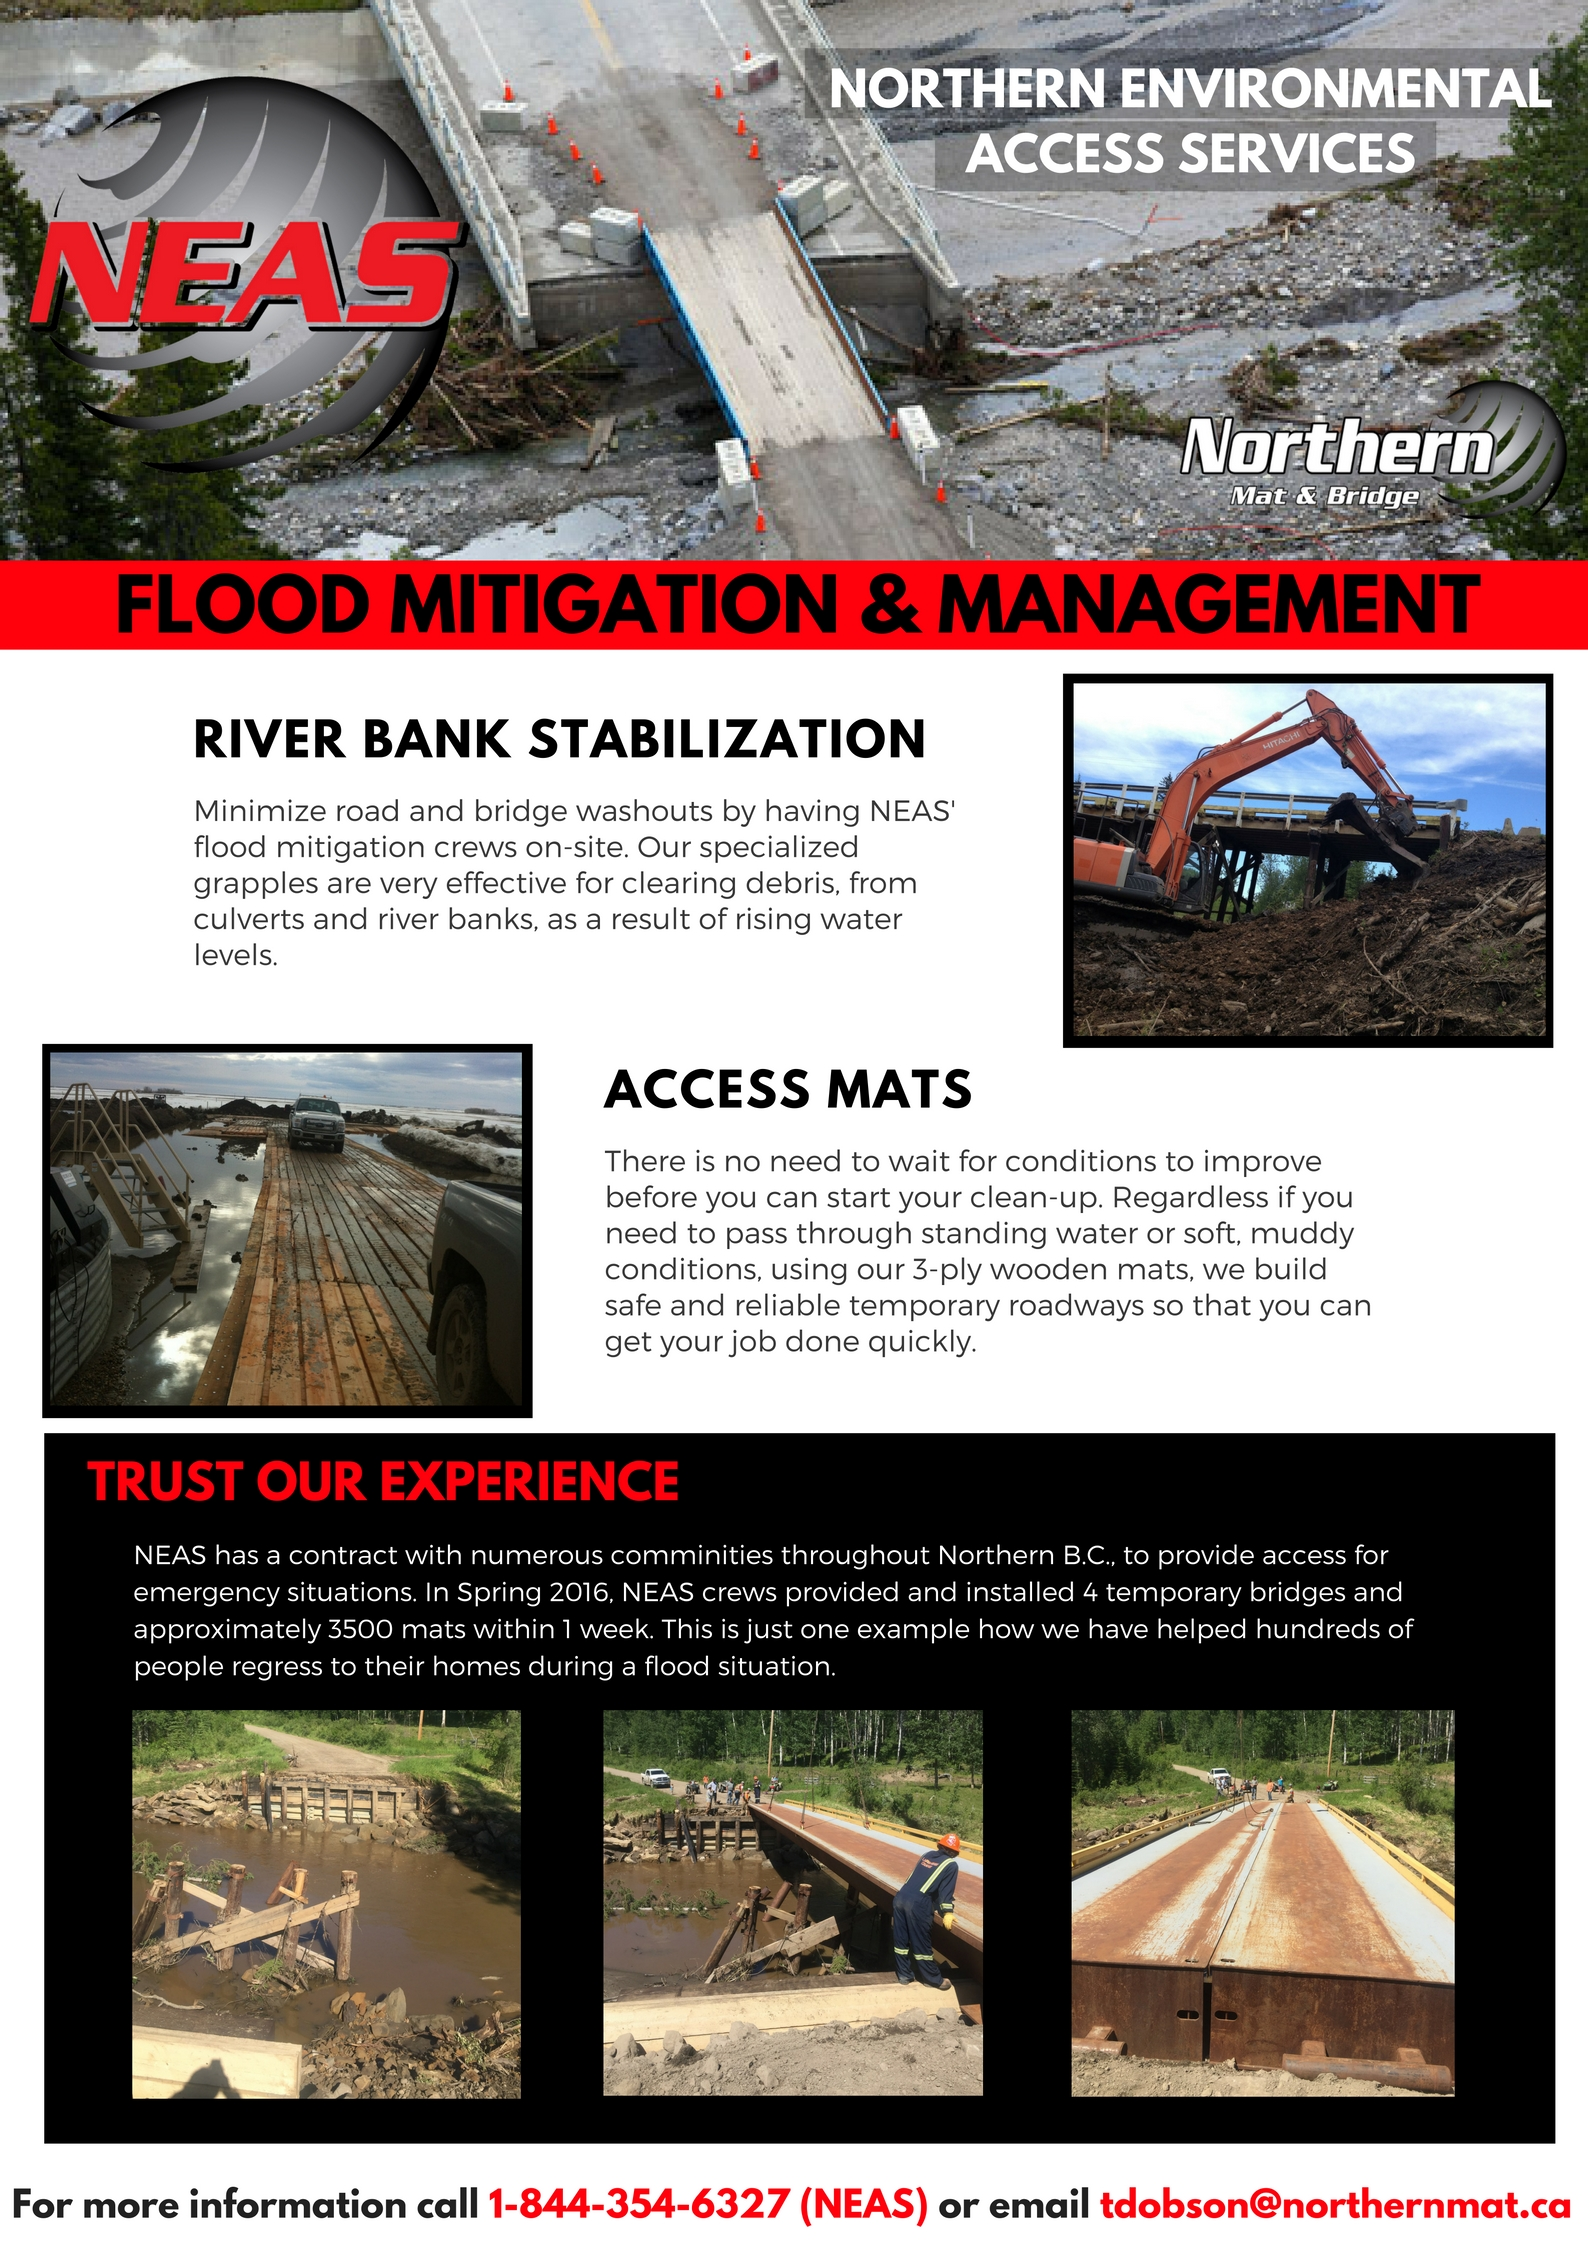 Flood Mitigation and Management Full Page - Northern Mat and Bridge